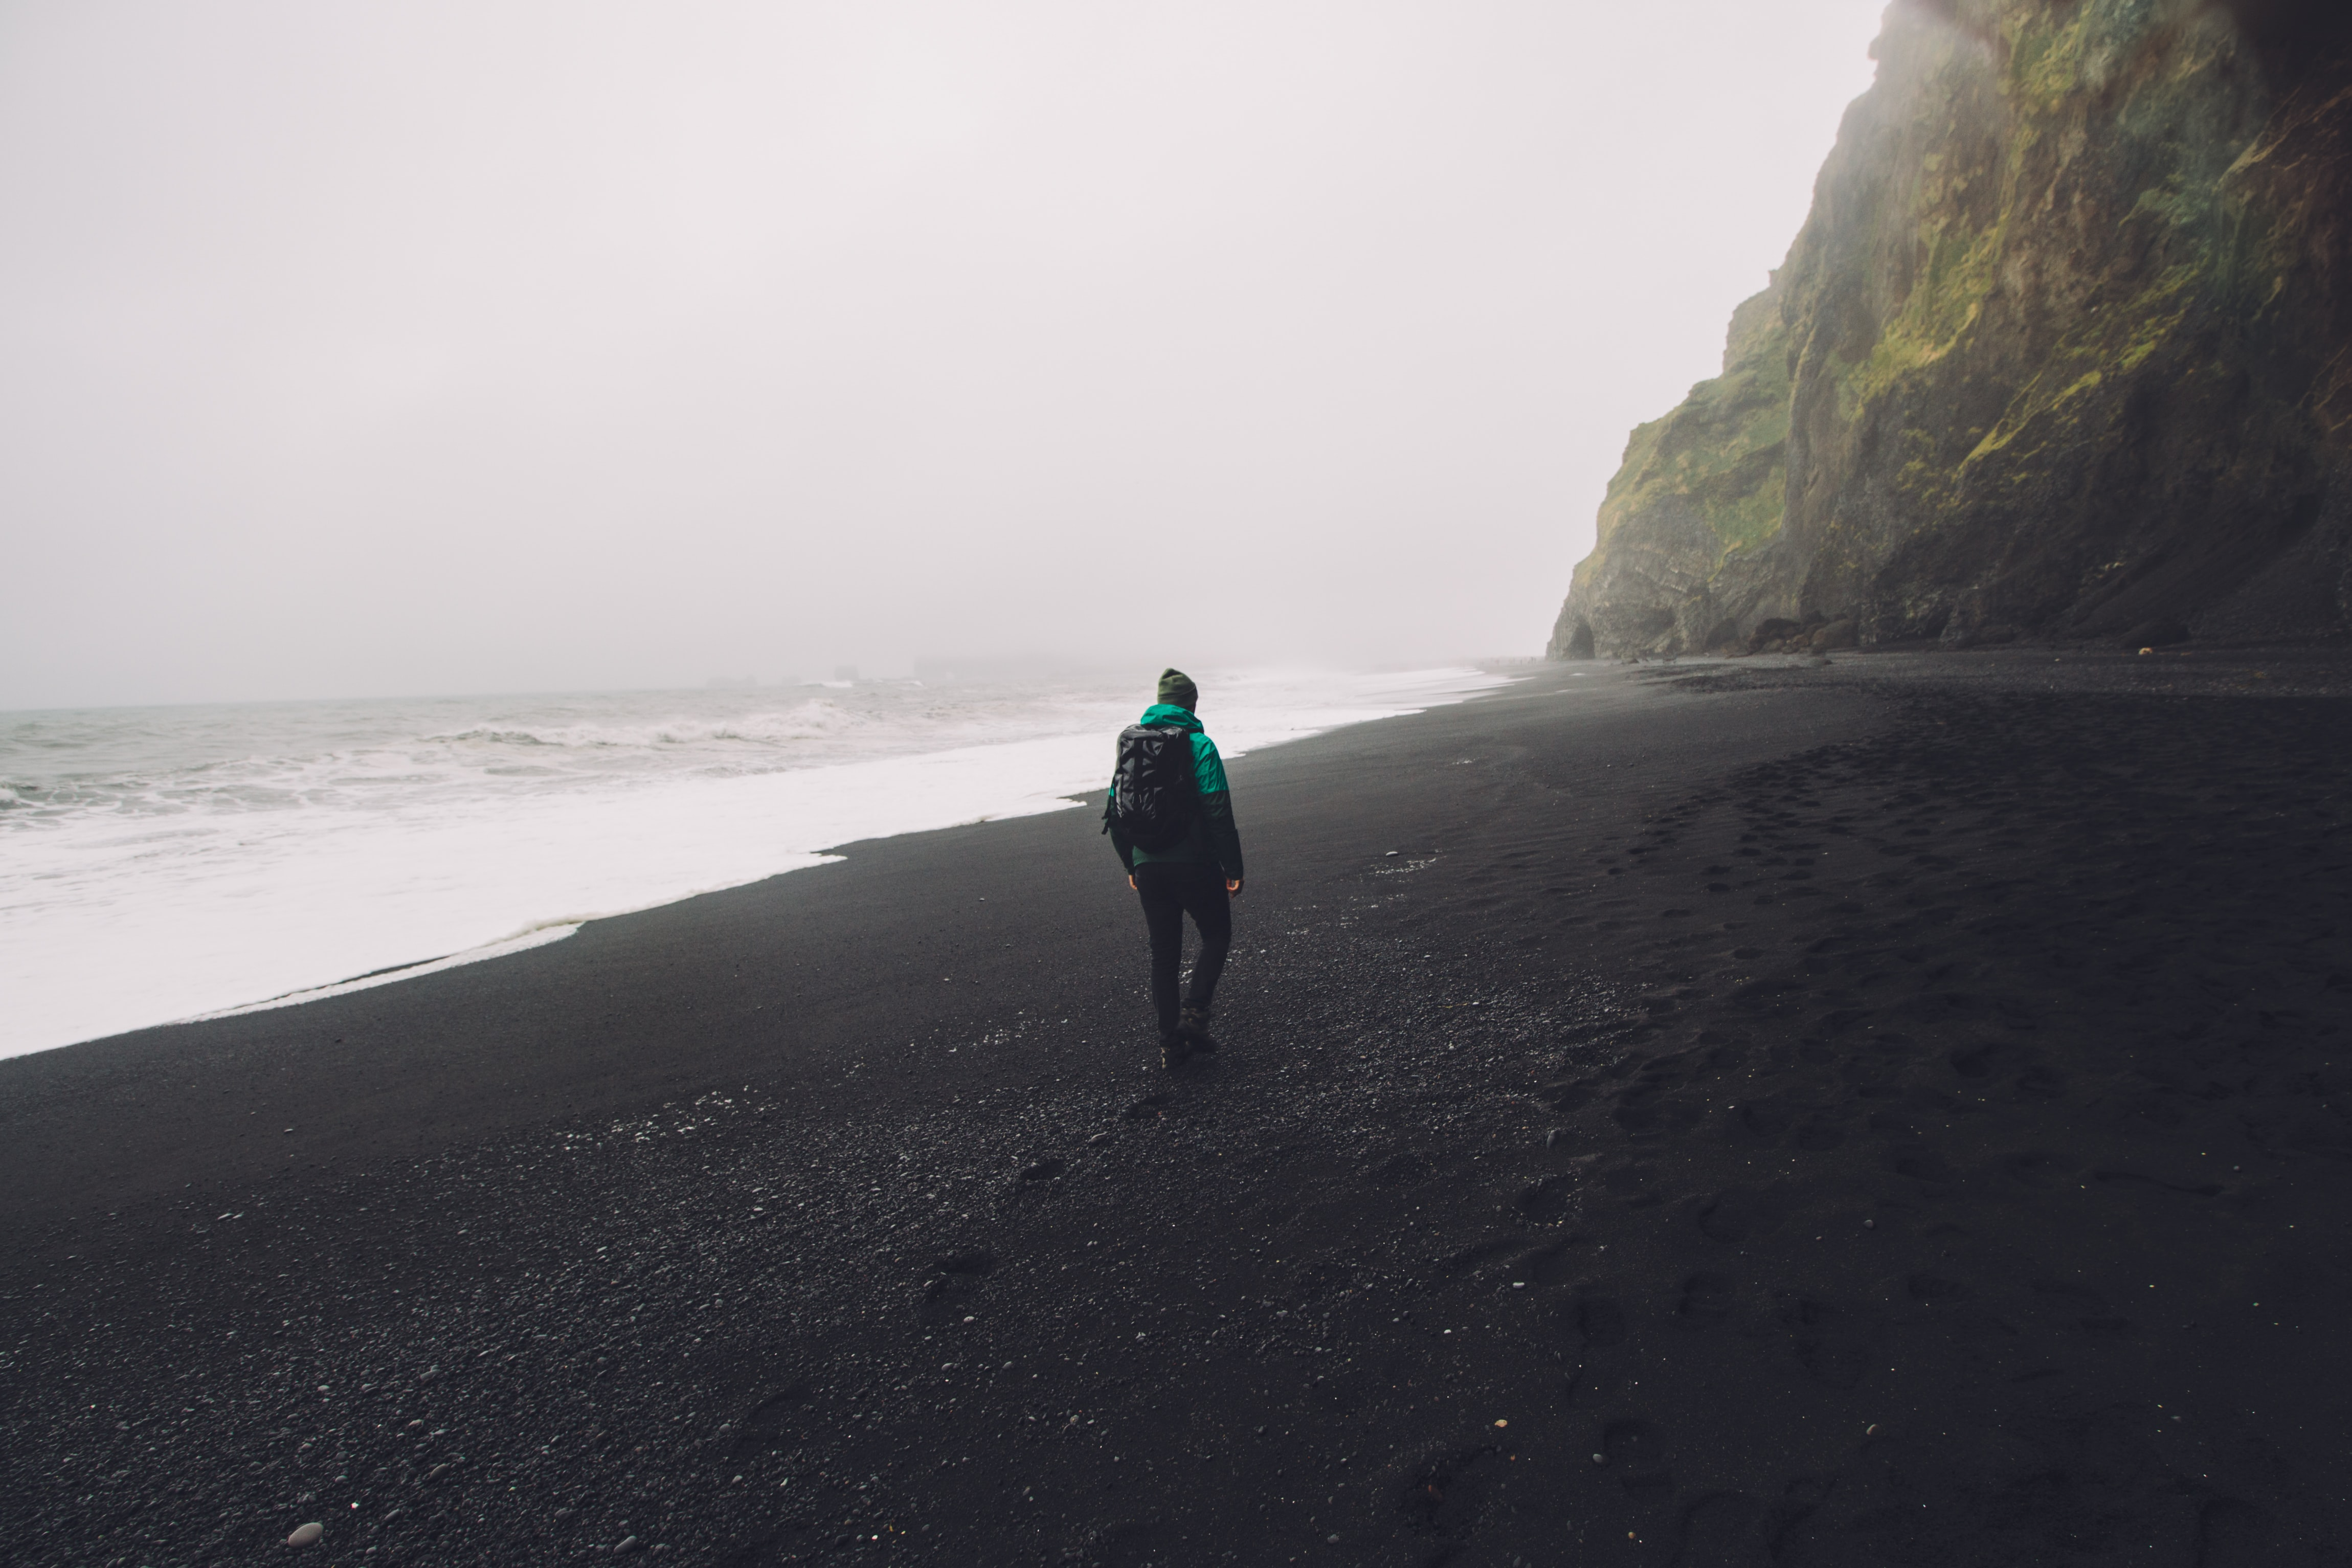 man walking on black seashore